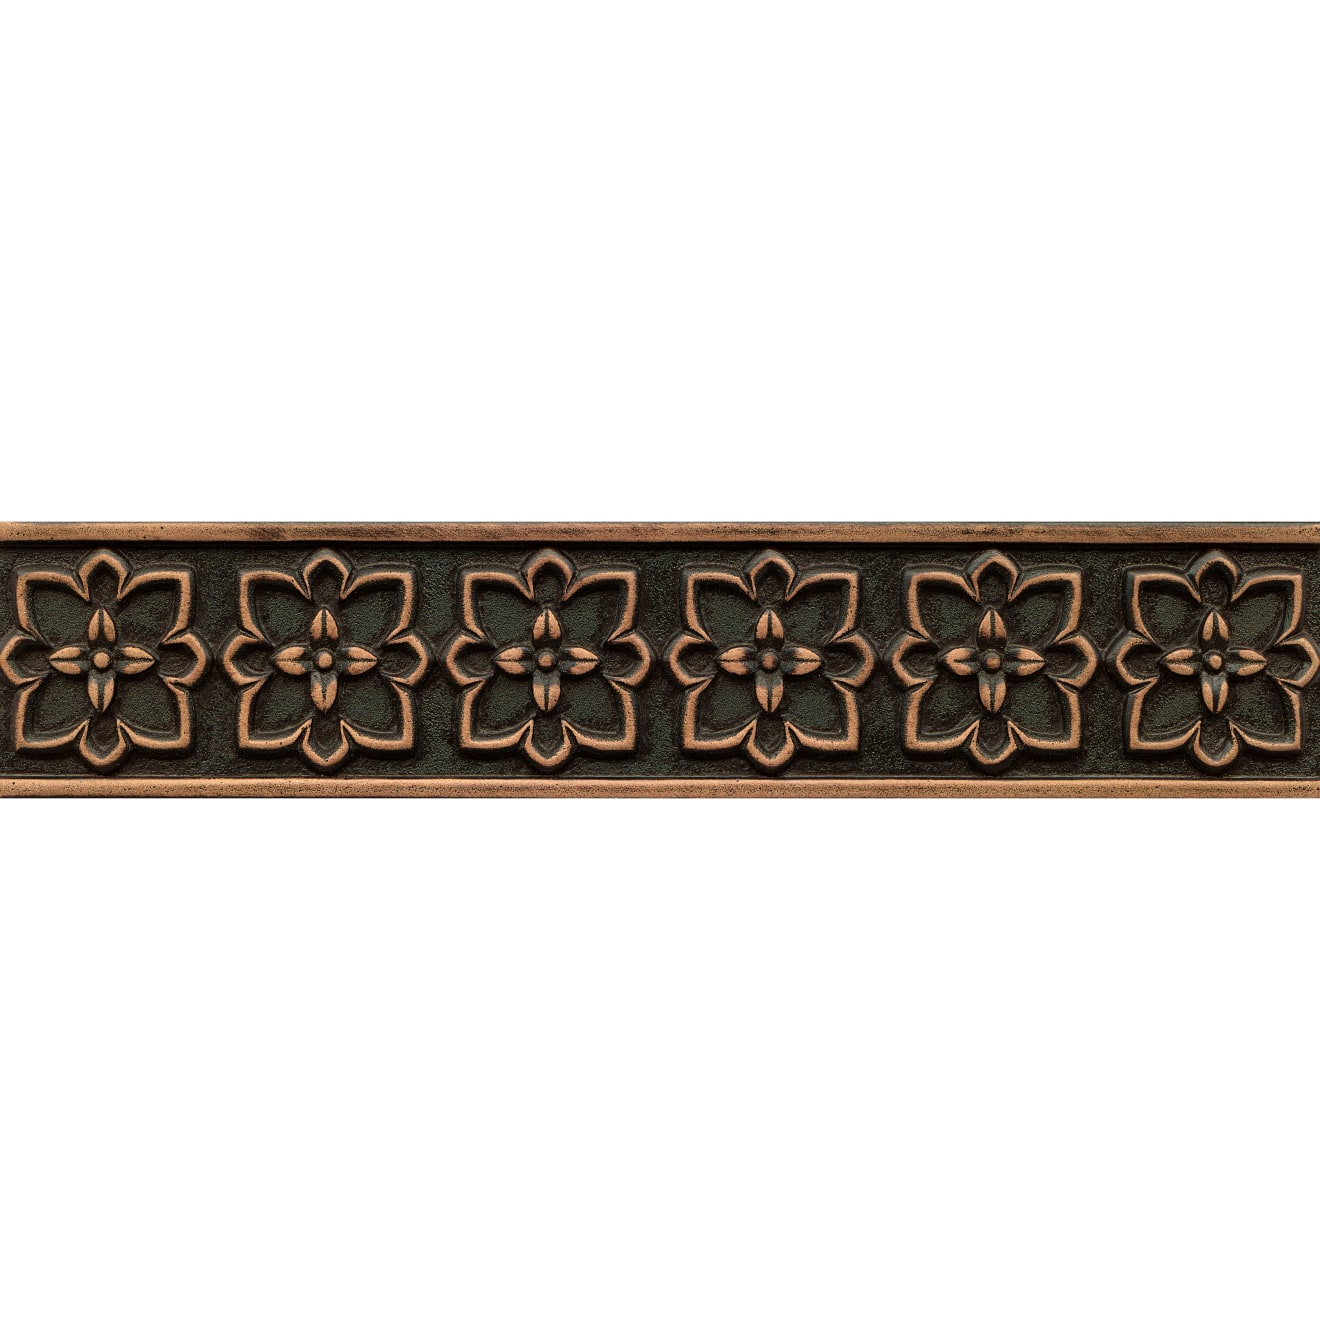 "Ambiance 2.5"" x 12"" Trim in Venetian Bronze"